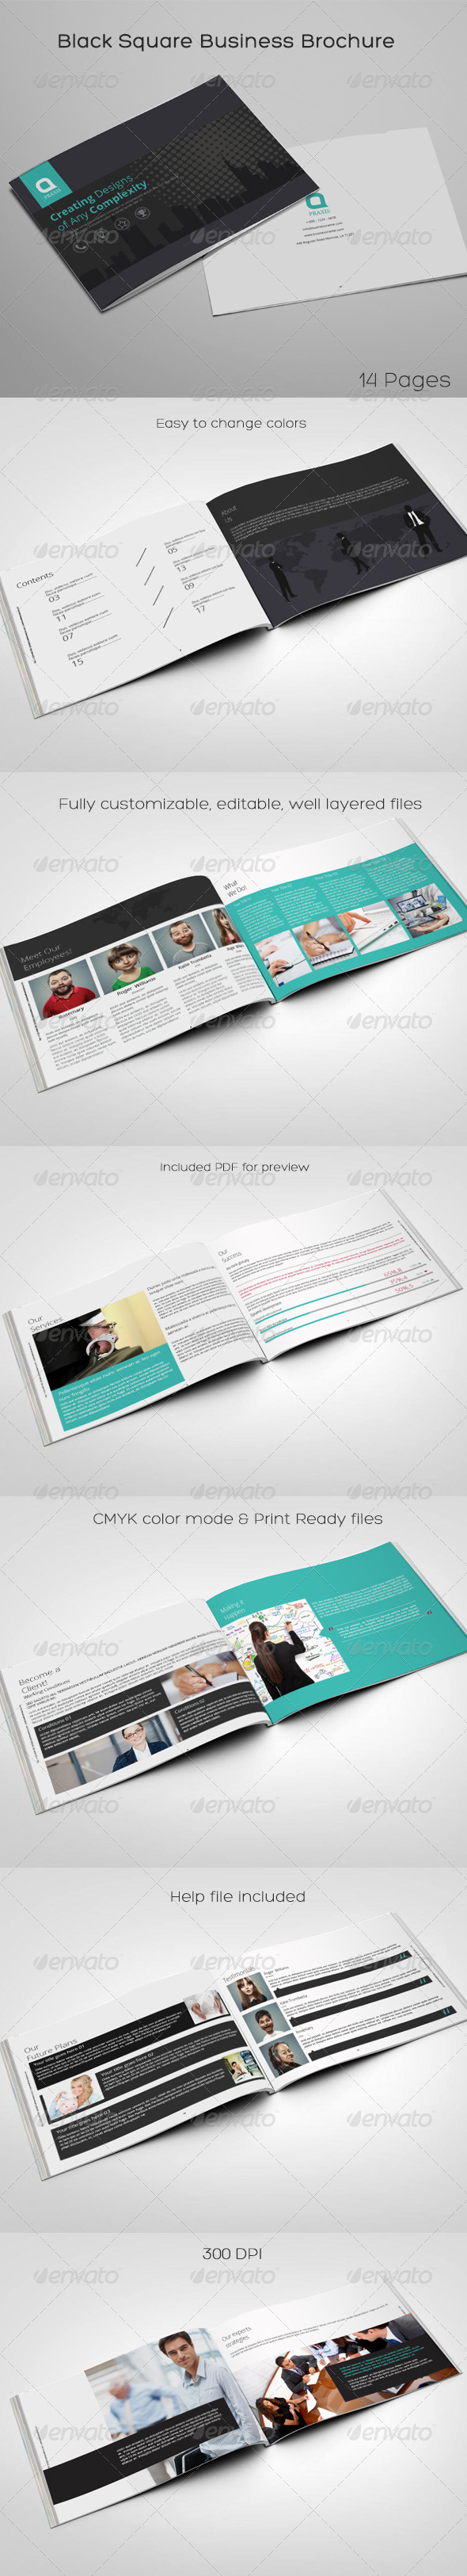 Black Square Business Brochure - Brochures Print Templates